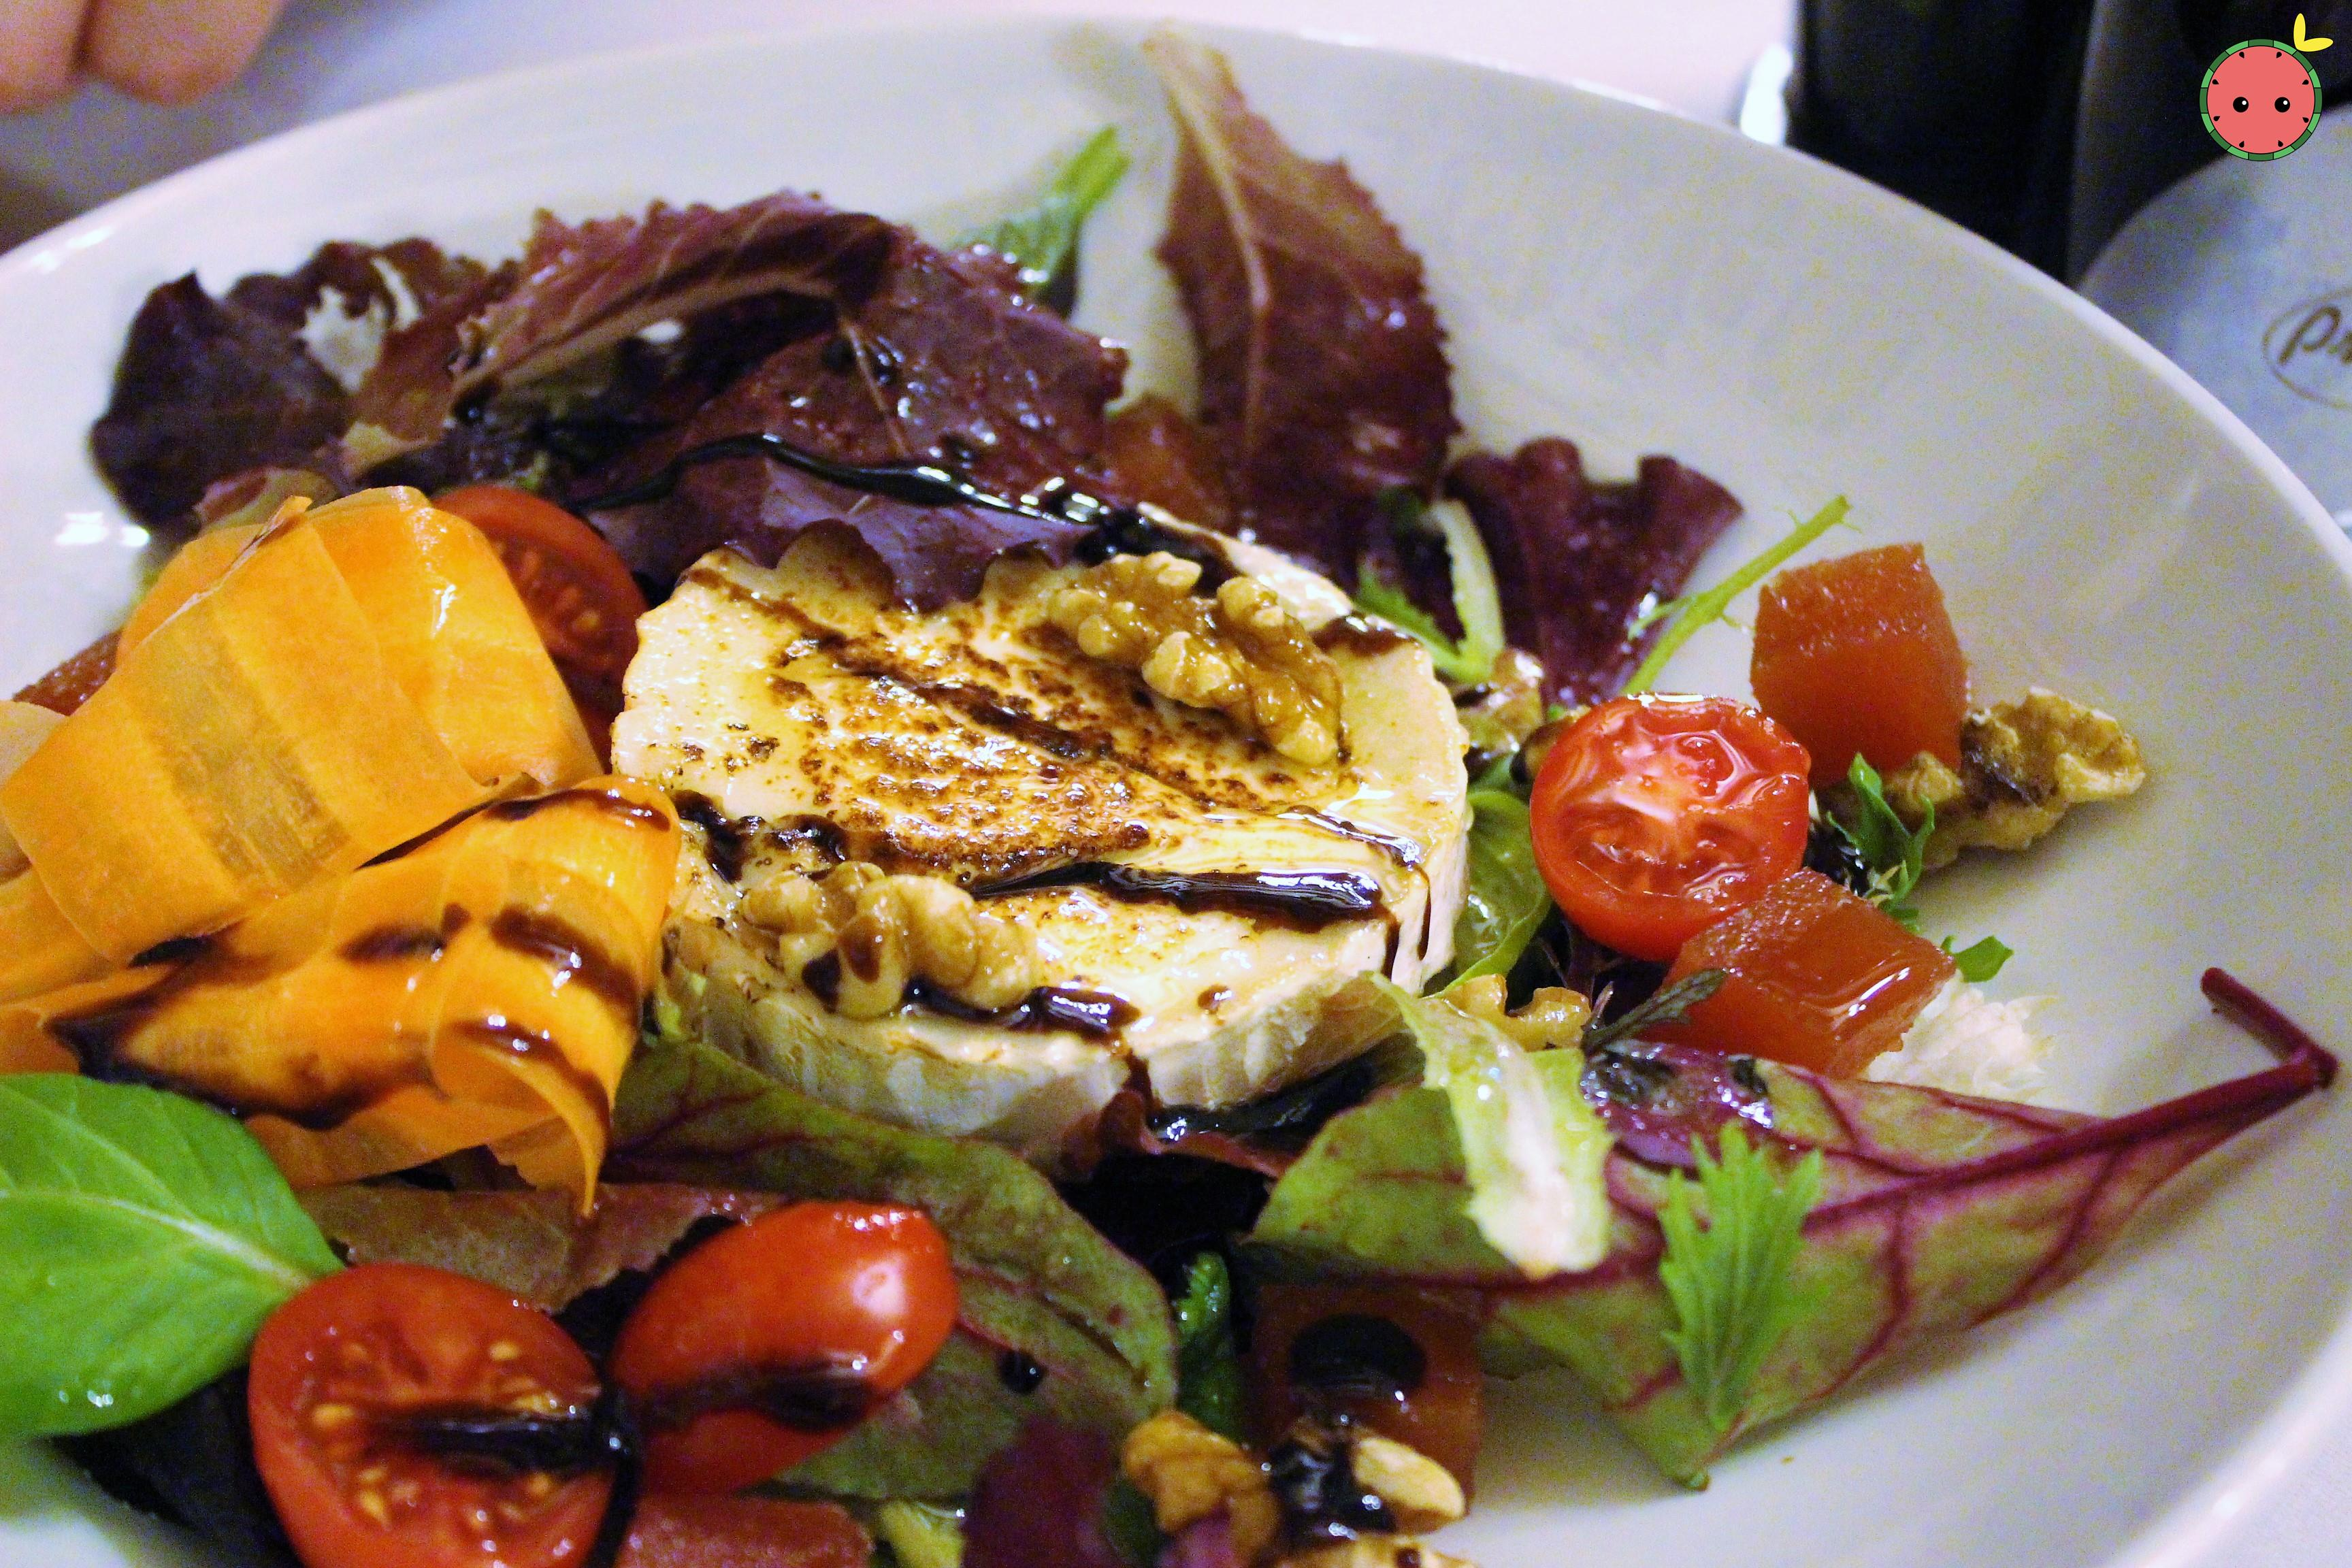 Goat Cheese Salad and Quince with Honey Sauce